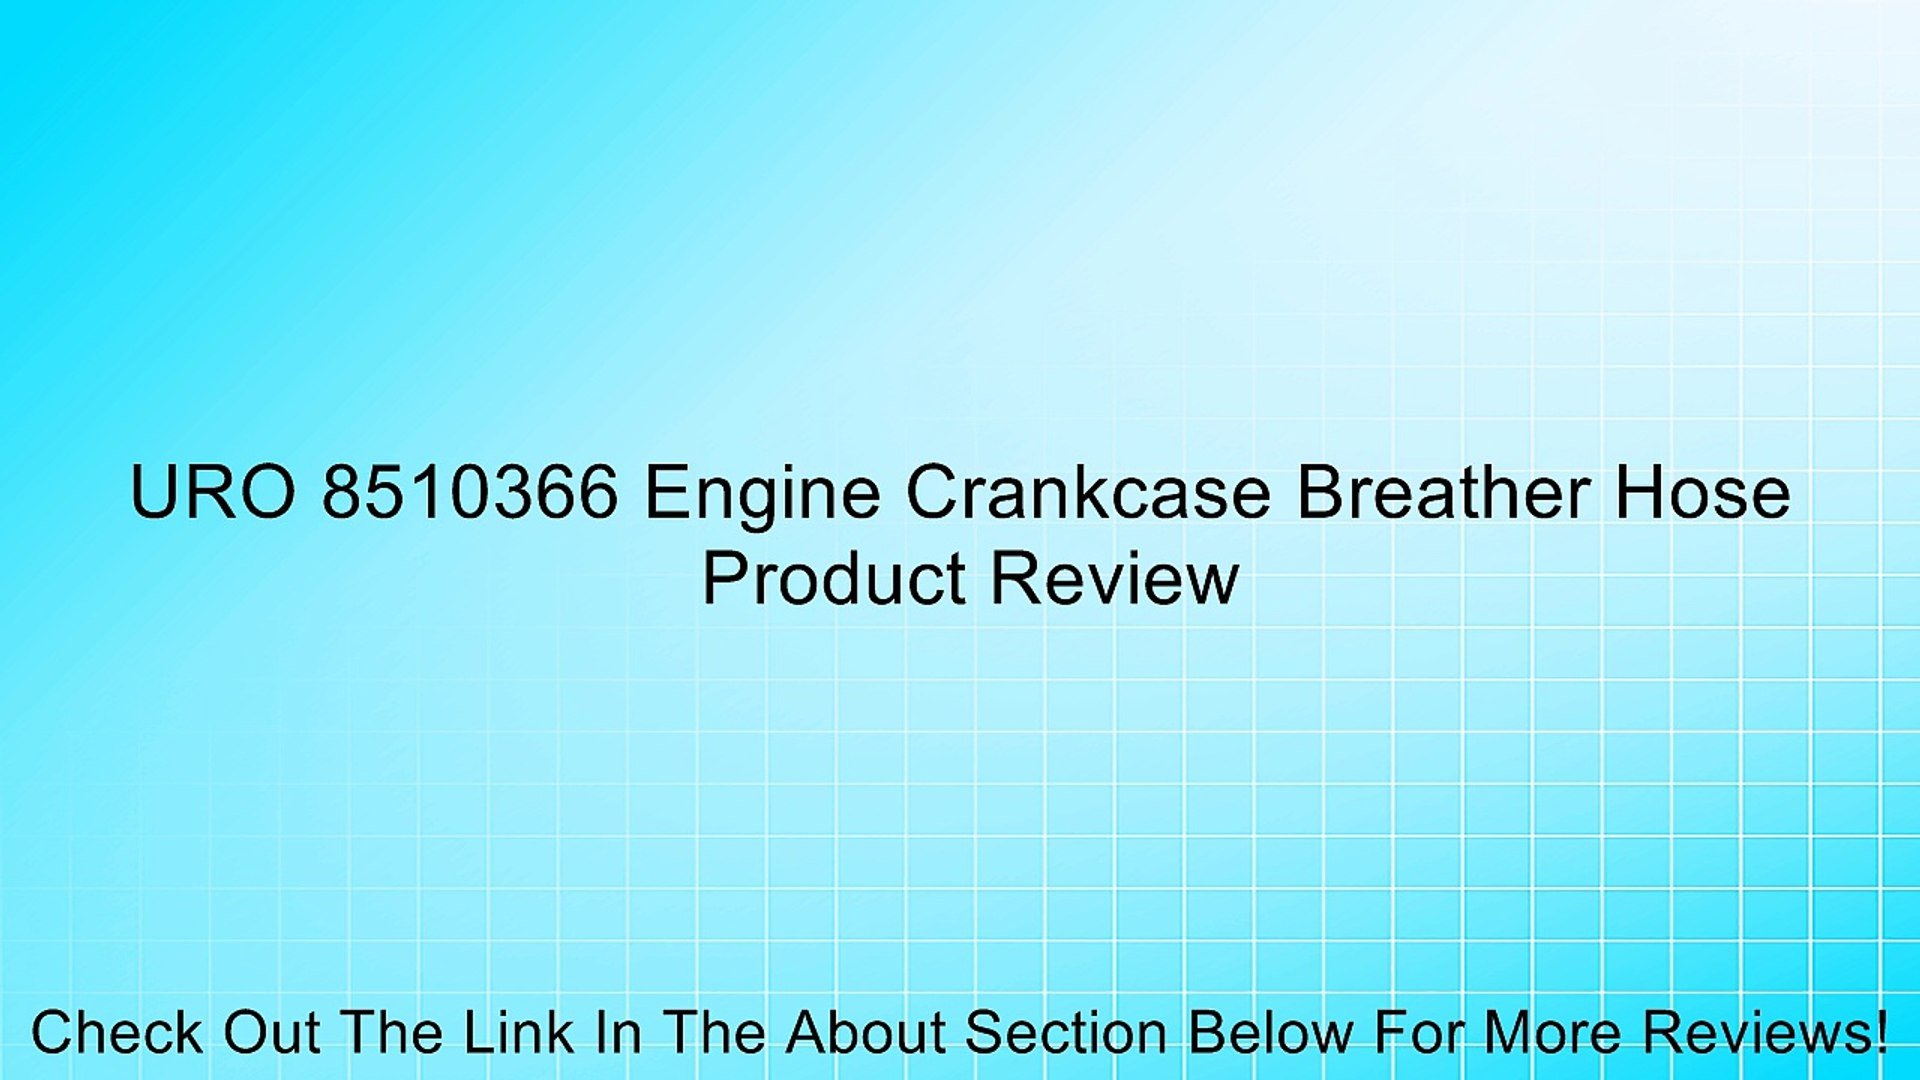 URO Parts 11 61 7 504 536 Oil Separator to Valve Cover Breather Hose